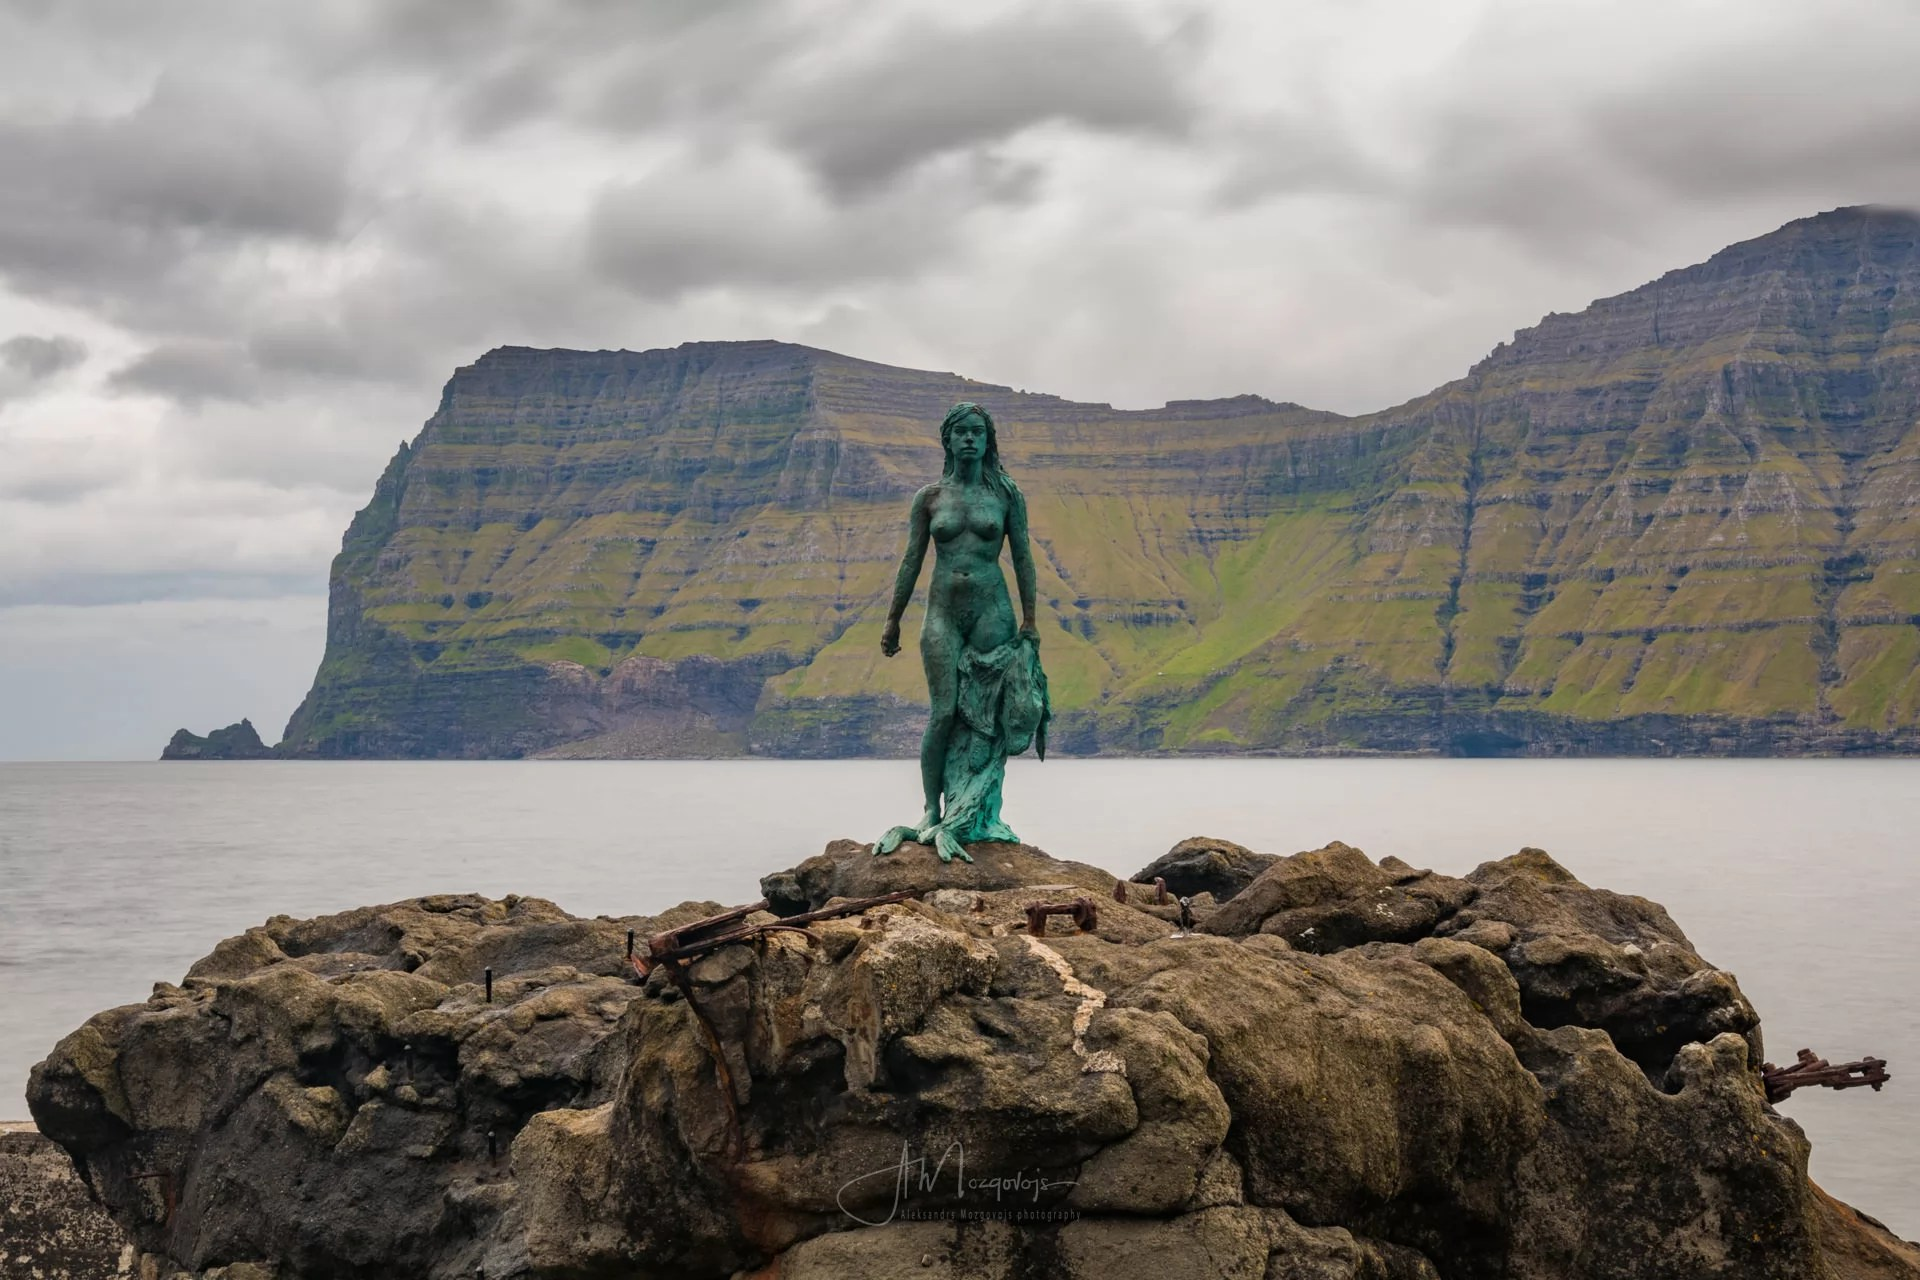 Kópakonan, the statue of the Seal Woman in Mikladalur, Kalsoy